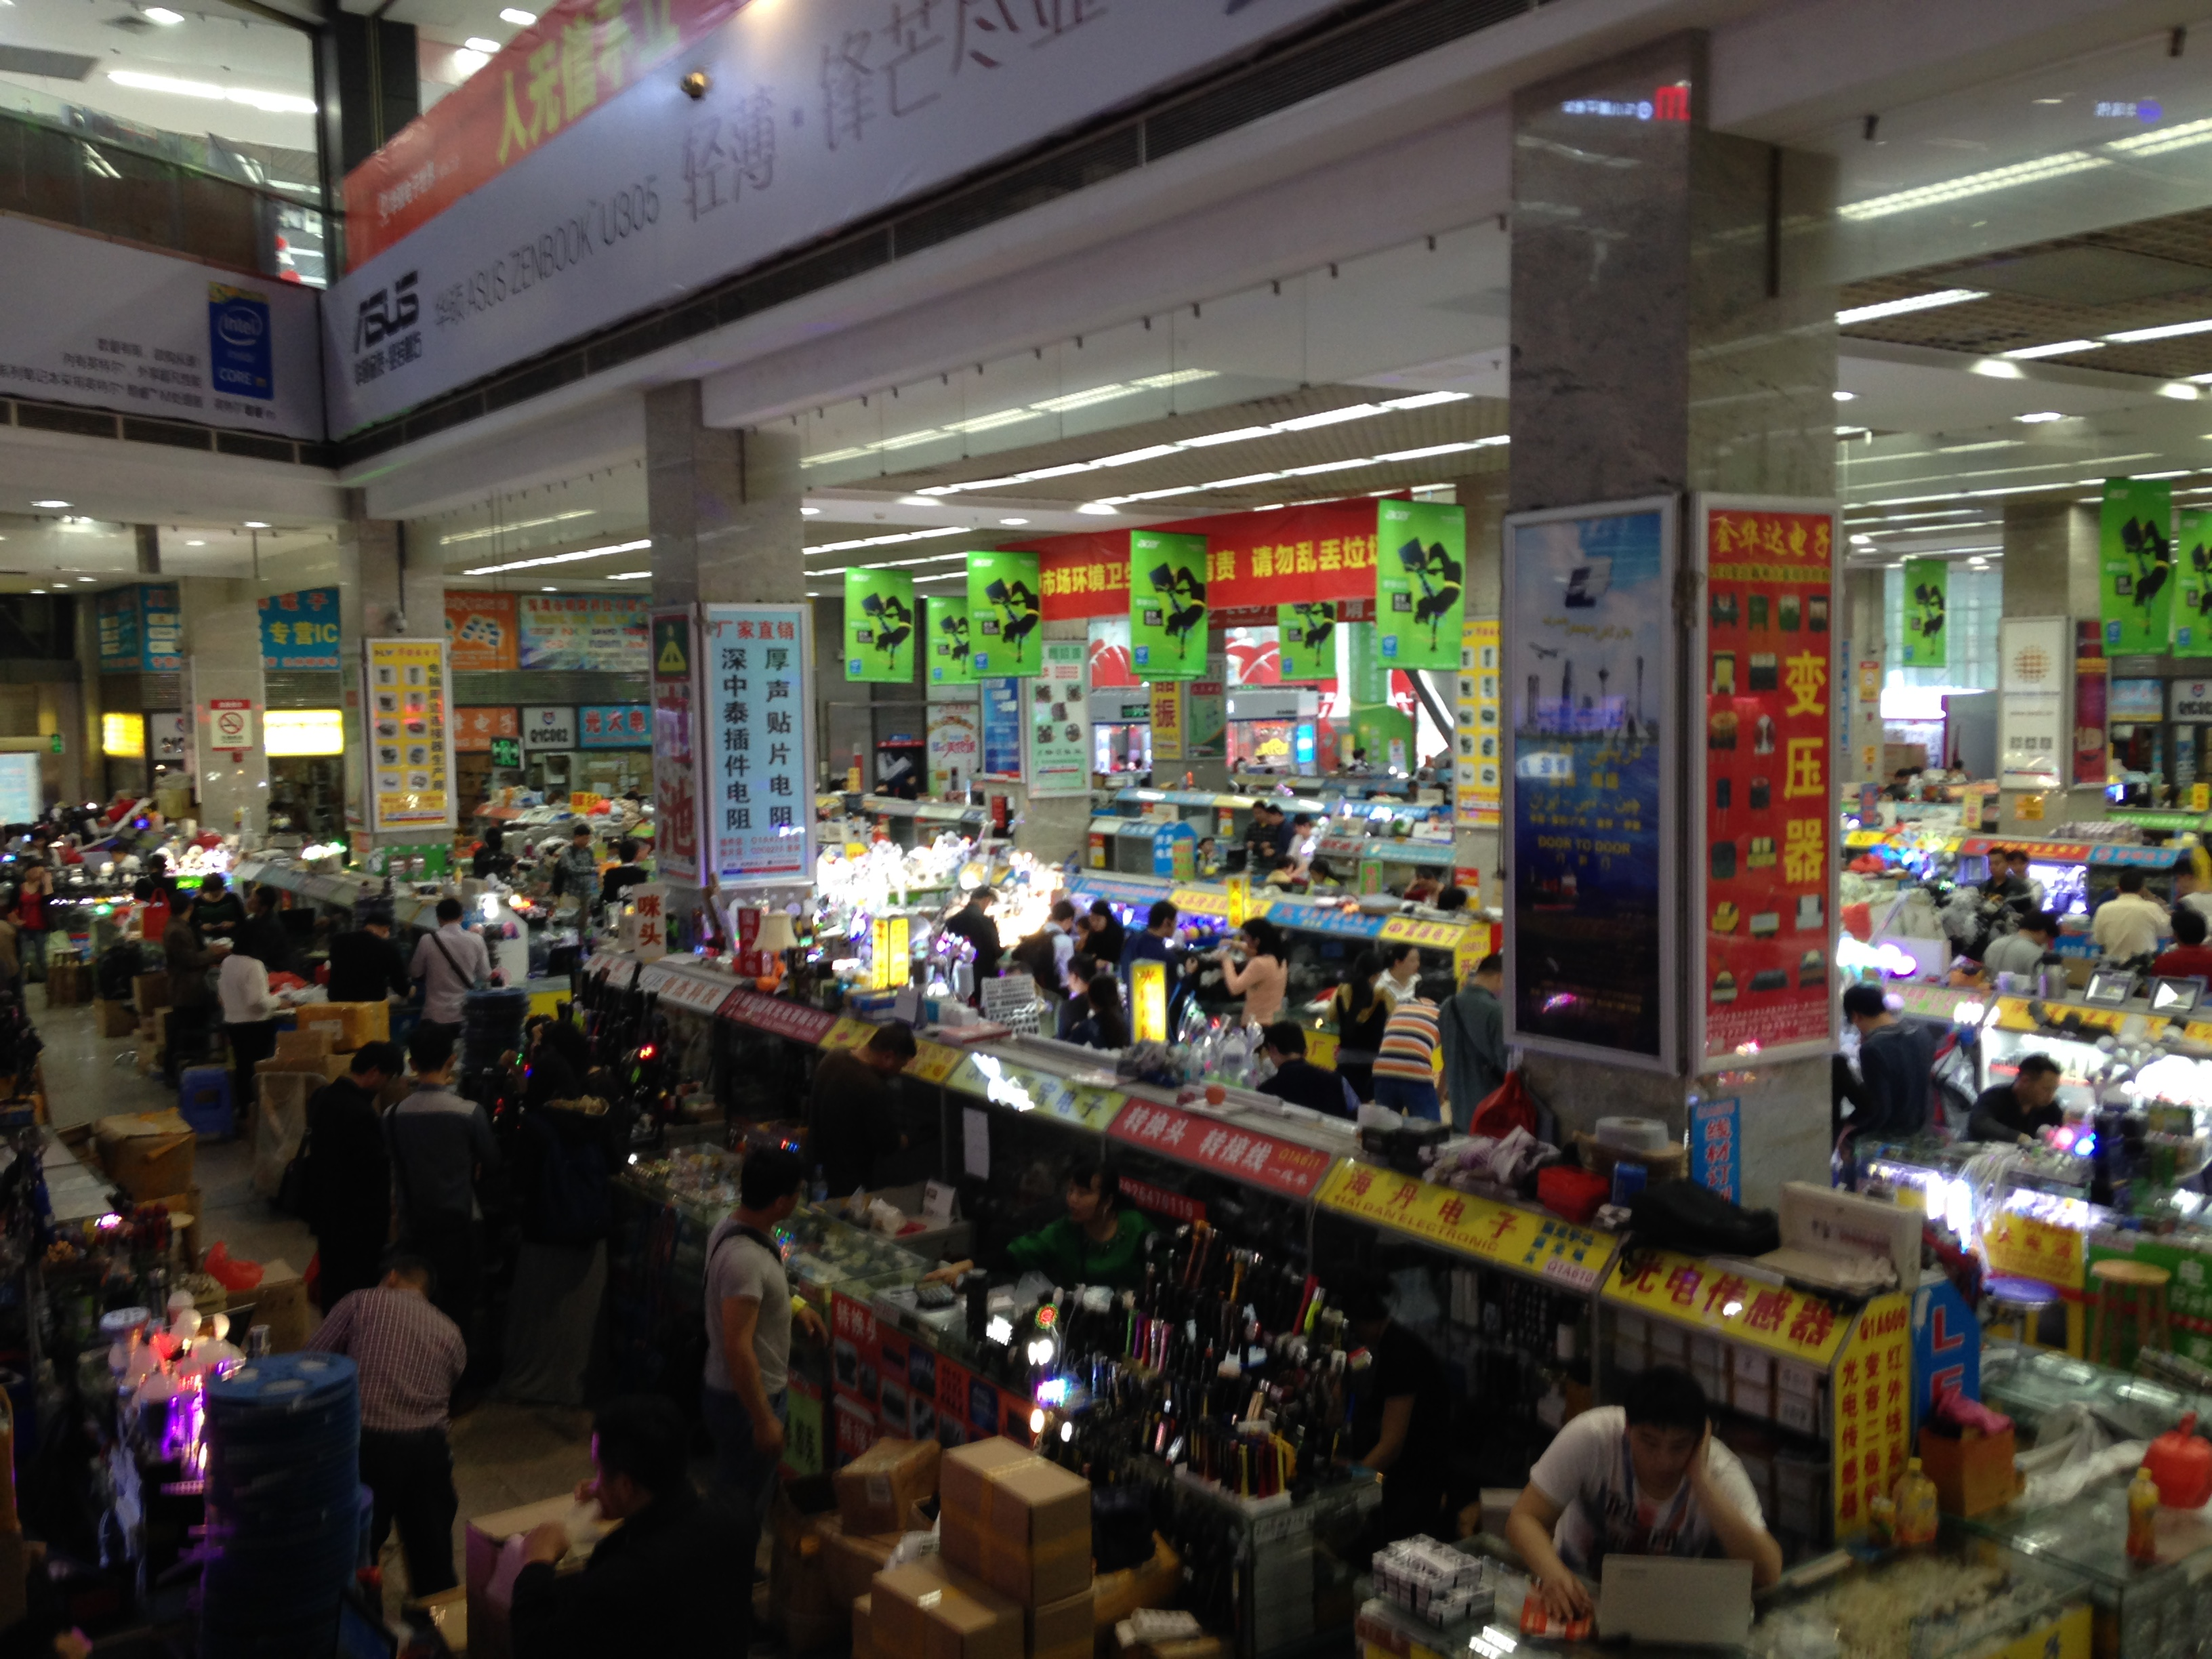 A typical electronics market in Shenzhen. b4223c27804